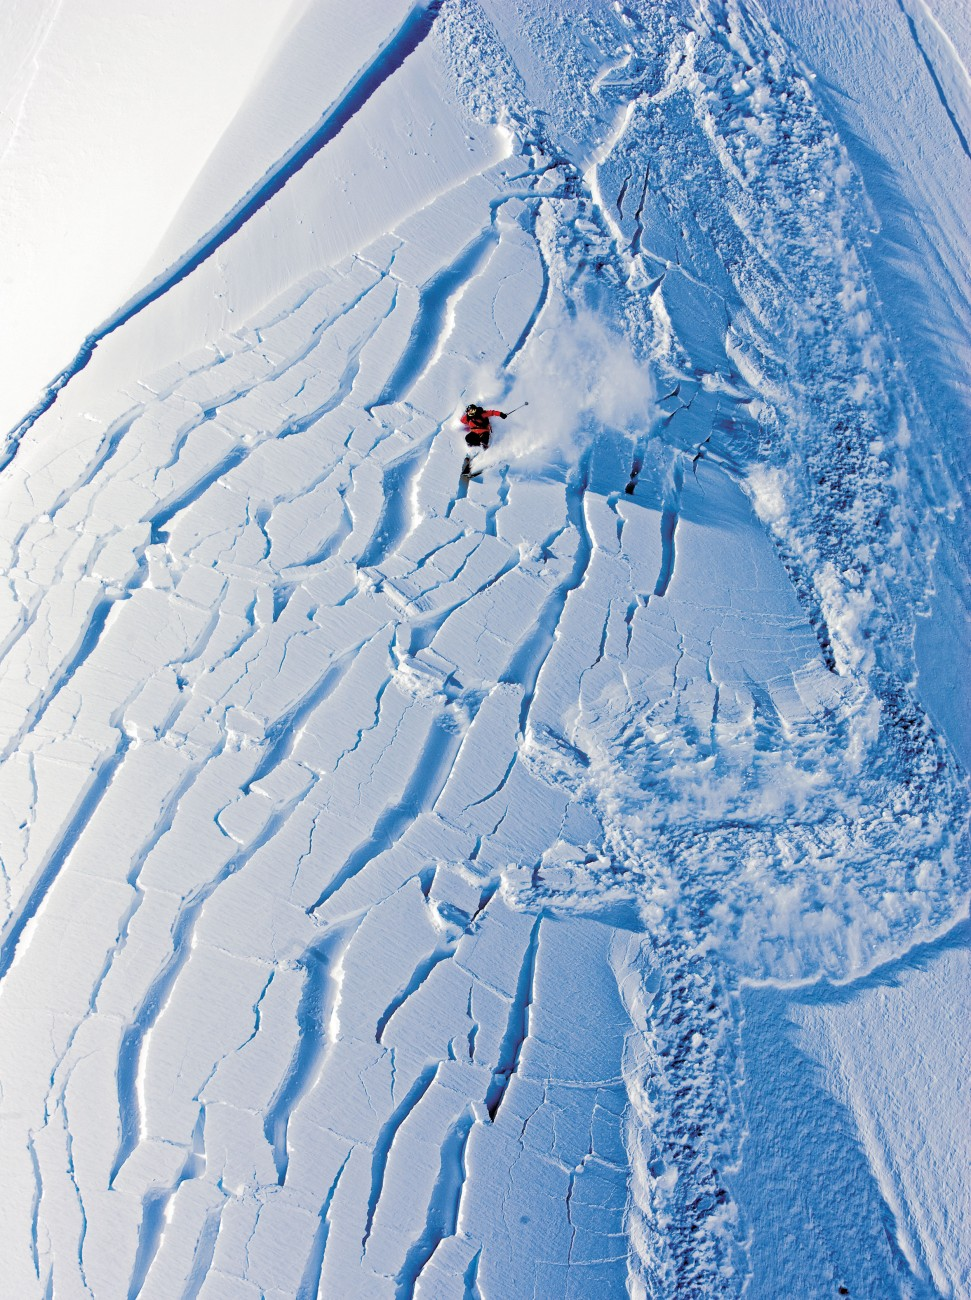 """Avalanches involving skiers are rarely caught on camera, but when extreme skier Andrea Binning carved down a face of fresh snow above Knight Inlet in British Columbia, Canada, she was being followed by a helicopter full of filmmakers and photographers recording the run for a video. A metre and a half of powder snow had fallen in one week, and the slope was unstable. """"The face that originally looked like powder heaven turned into jigsaw pieces,"""" she says. """"I tried to ski out of the slide, but the force was too great. The avalanche took me and I started cartwheeling at high speed down the face. Surprisingly, I relaxed and just tried to go with it—I think I had accepted my fate."""" Binning came to a halt at the bottom of the hill with little more than a torn knee ligament."""